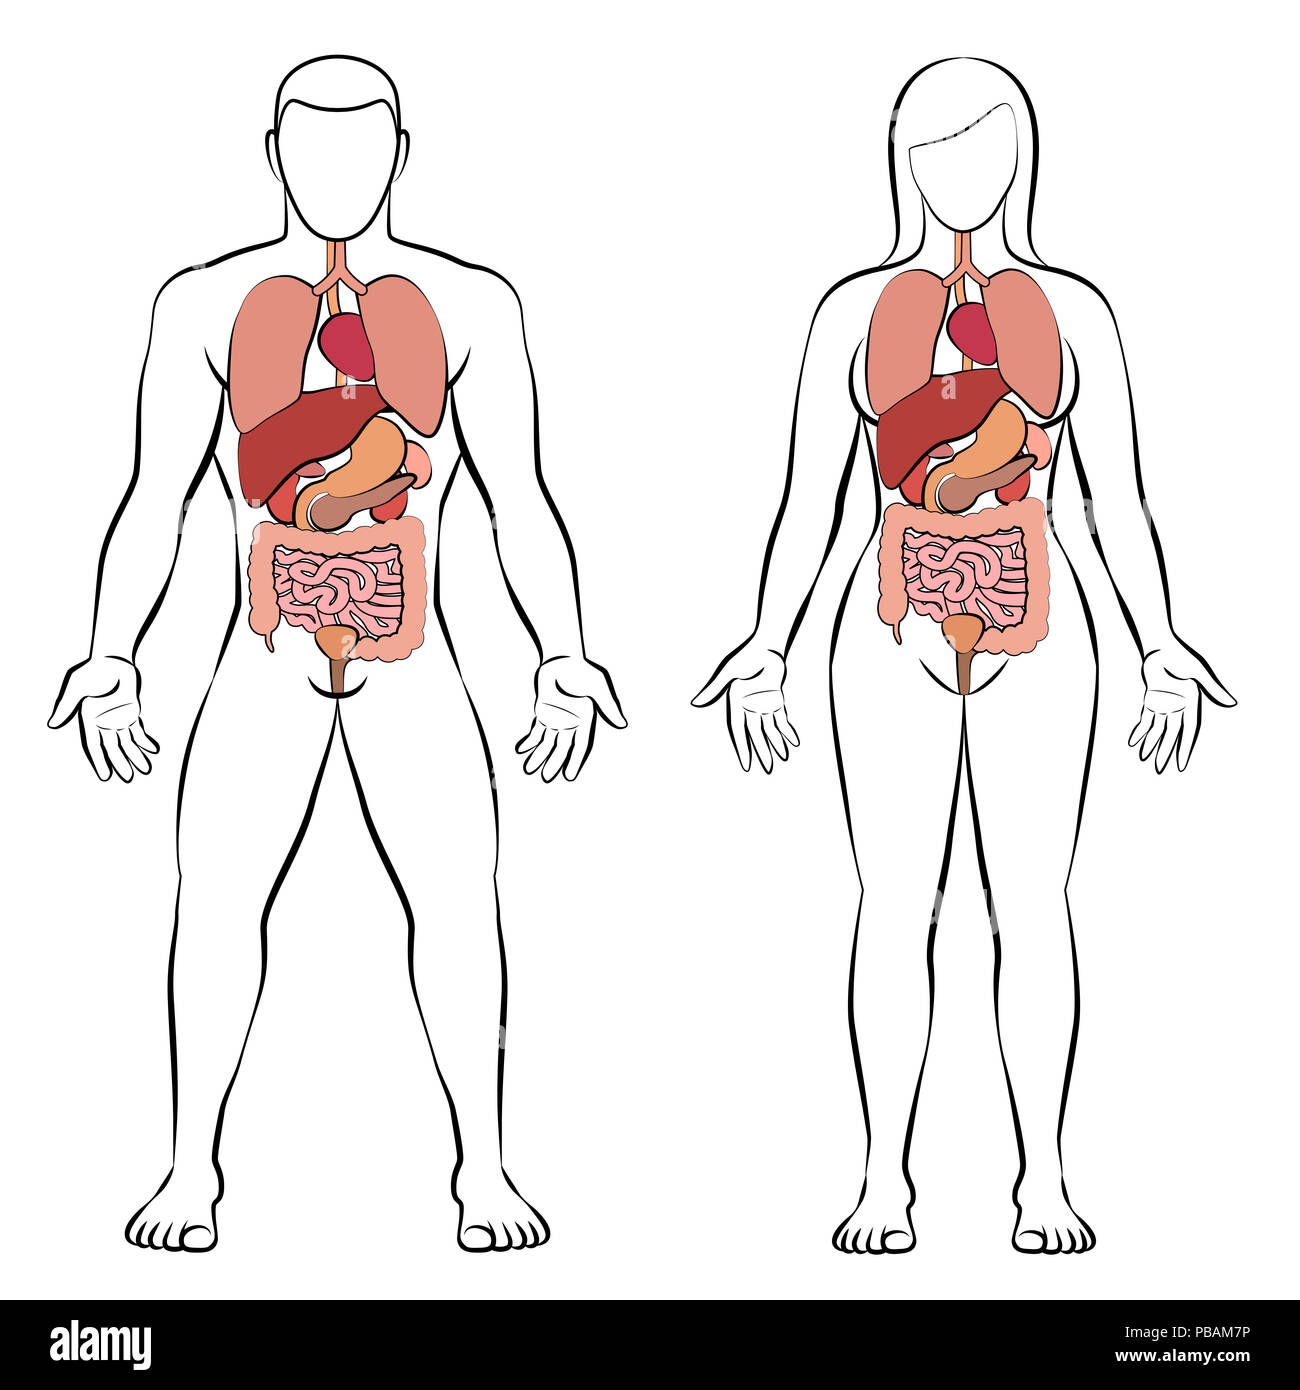 hight resolution of digestive tract with internal organs male and female body schematic human anatomy illustration on white background